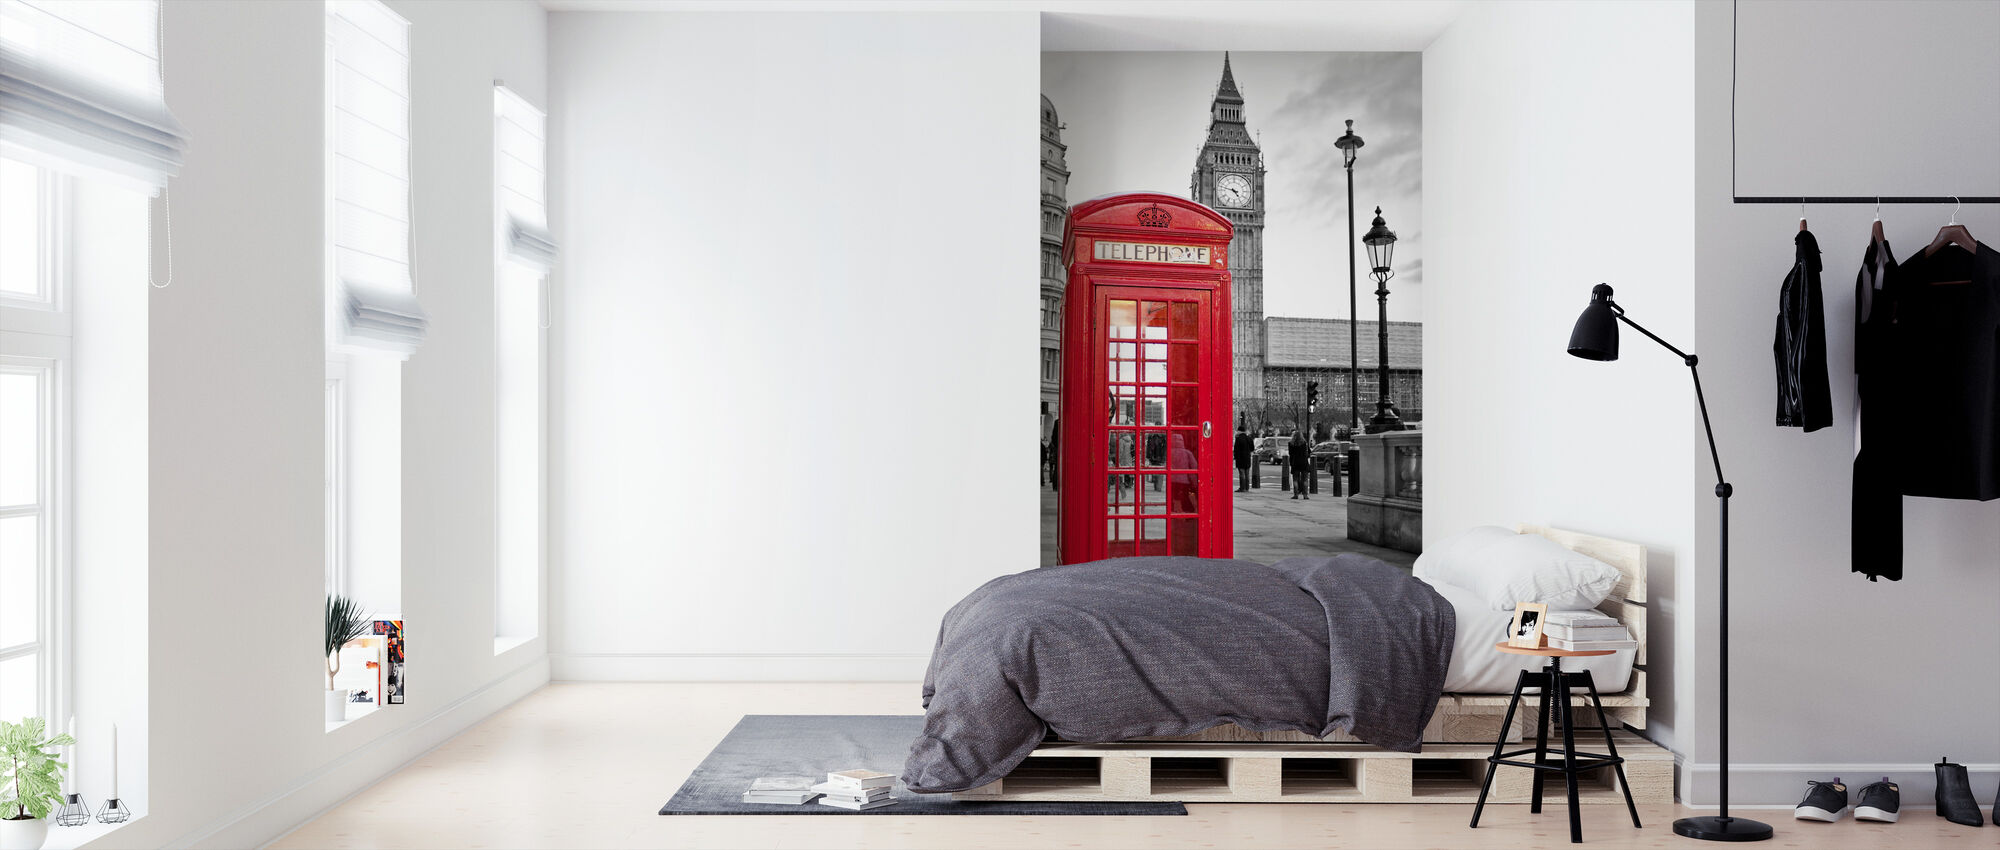 London Telephone - Wallpaper - Bedroom